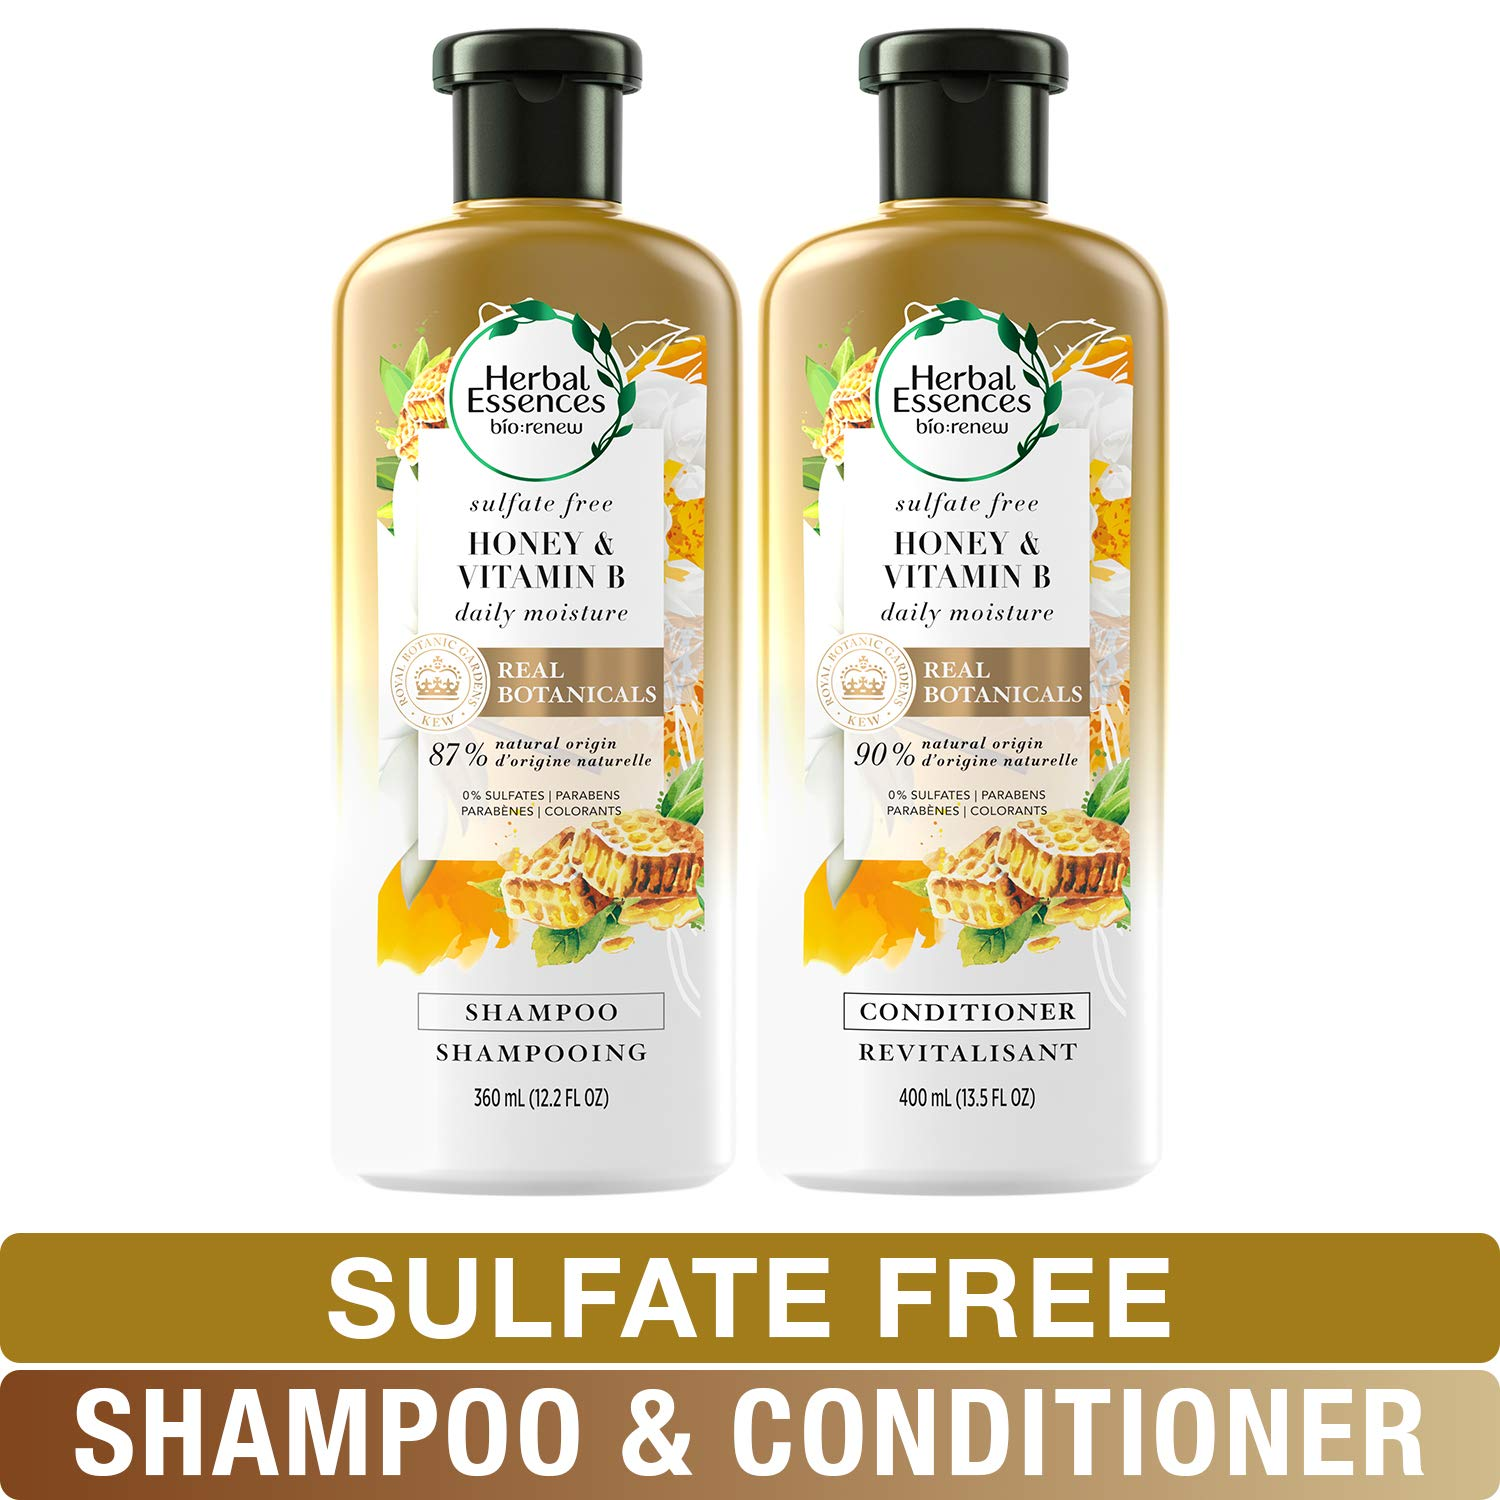 Herbal Essences Sulfate Free Shampoo and Conditioner Kit, BioRenew Honey & Vitamin B, Safe for Color Treated Hair 13.5 & 12.2 fl oz, Kit by Herbal Essences